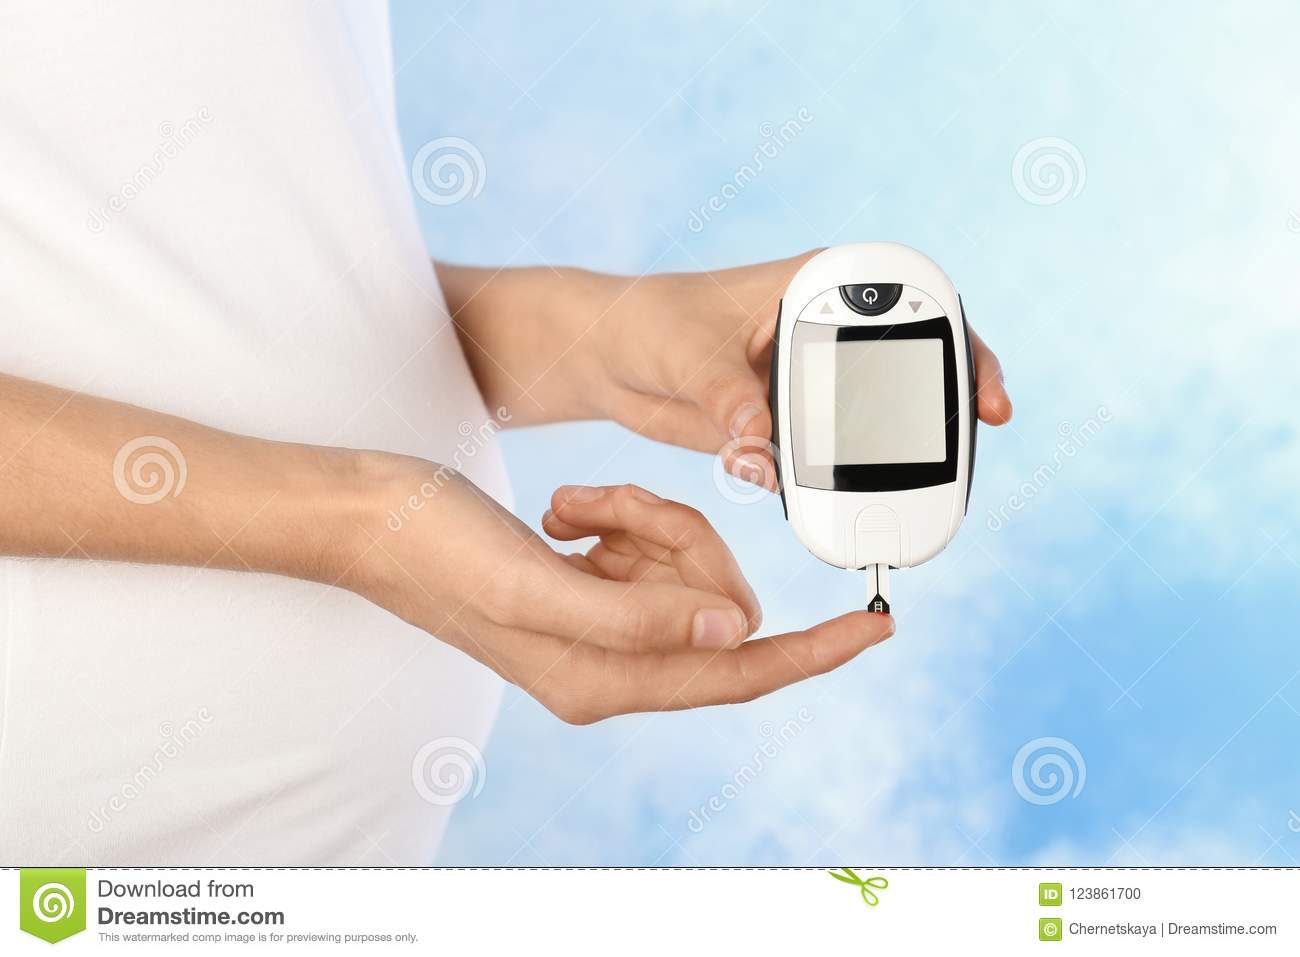 Pregnant woman checking blood sugar level with glucometer on color background. Diabetes test